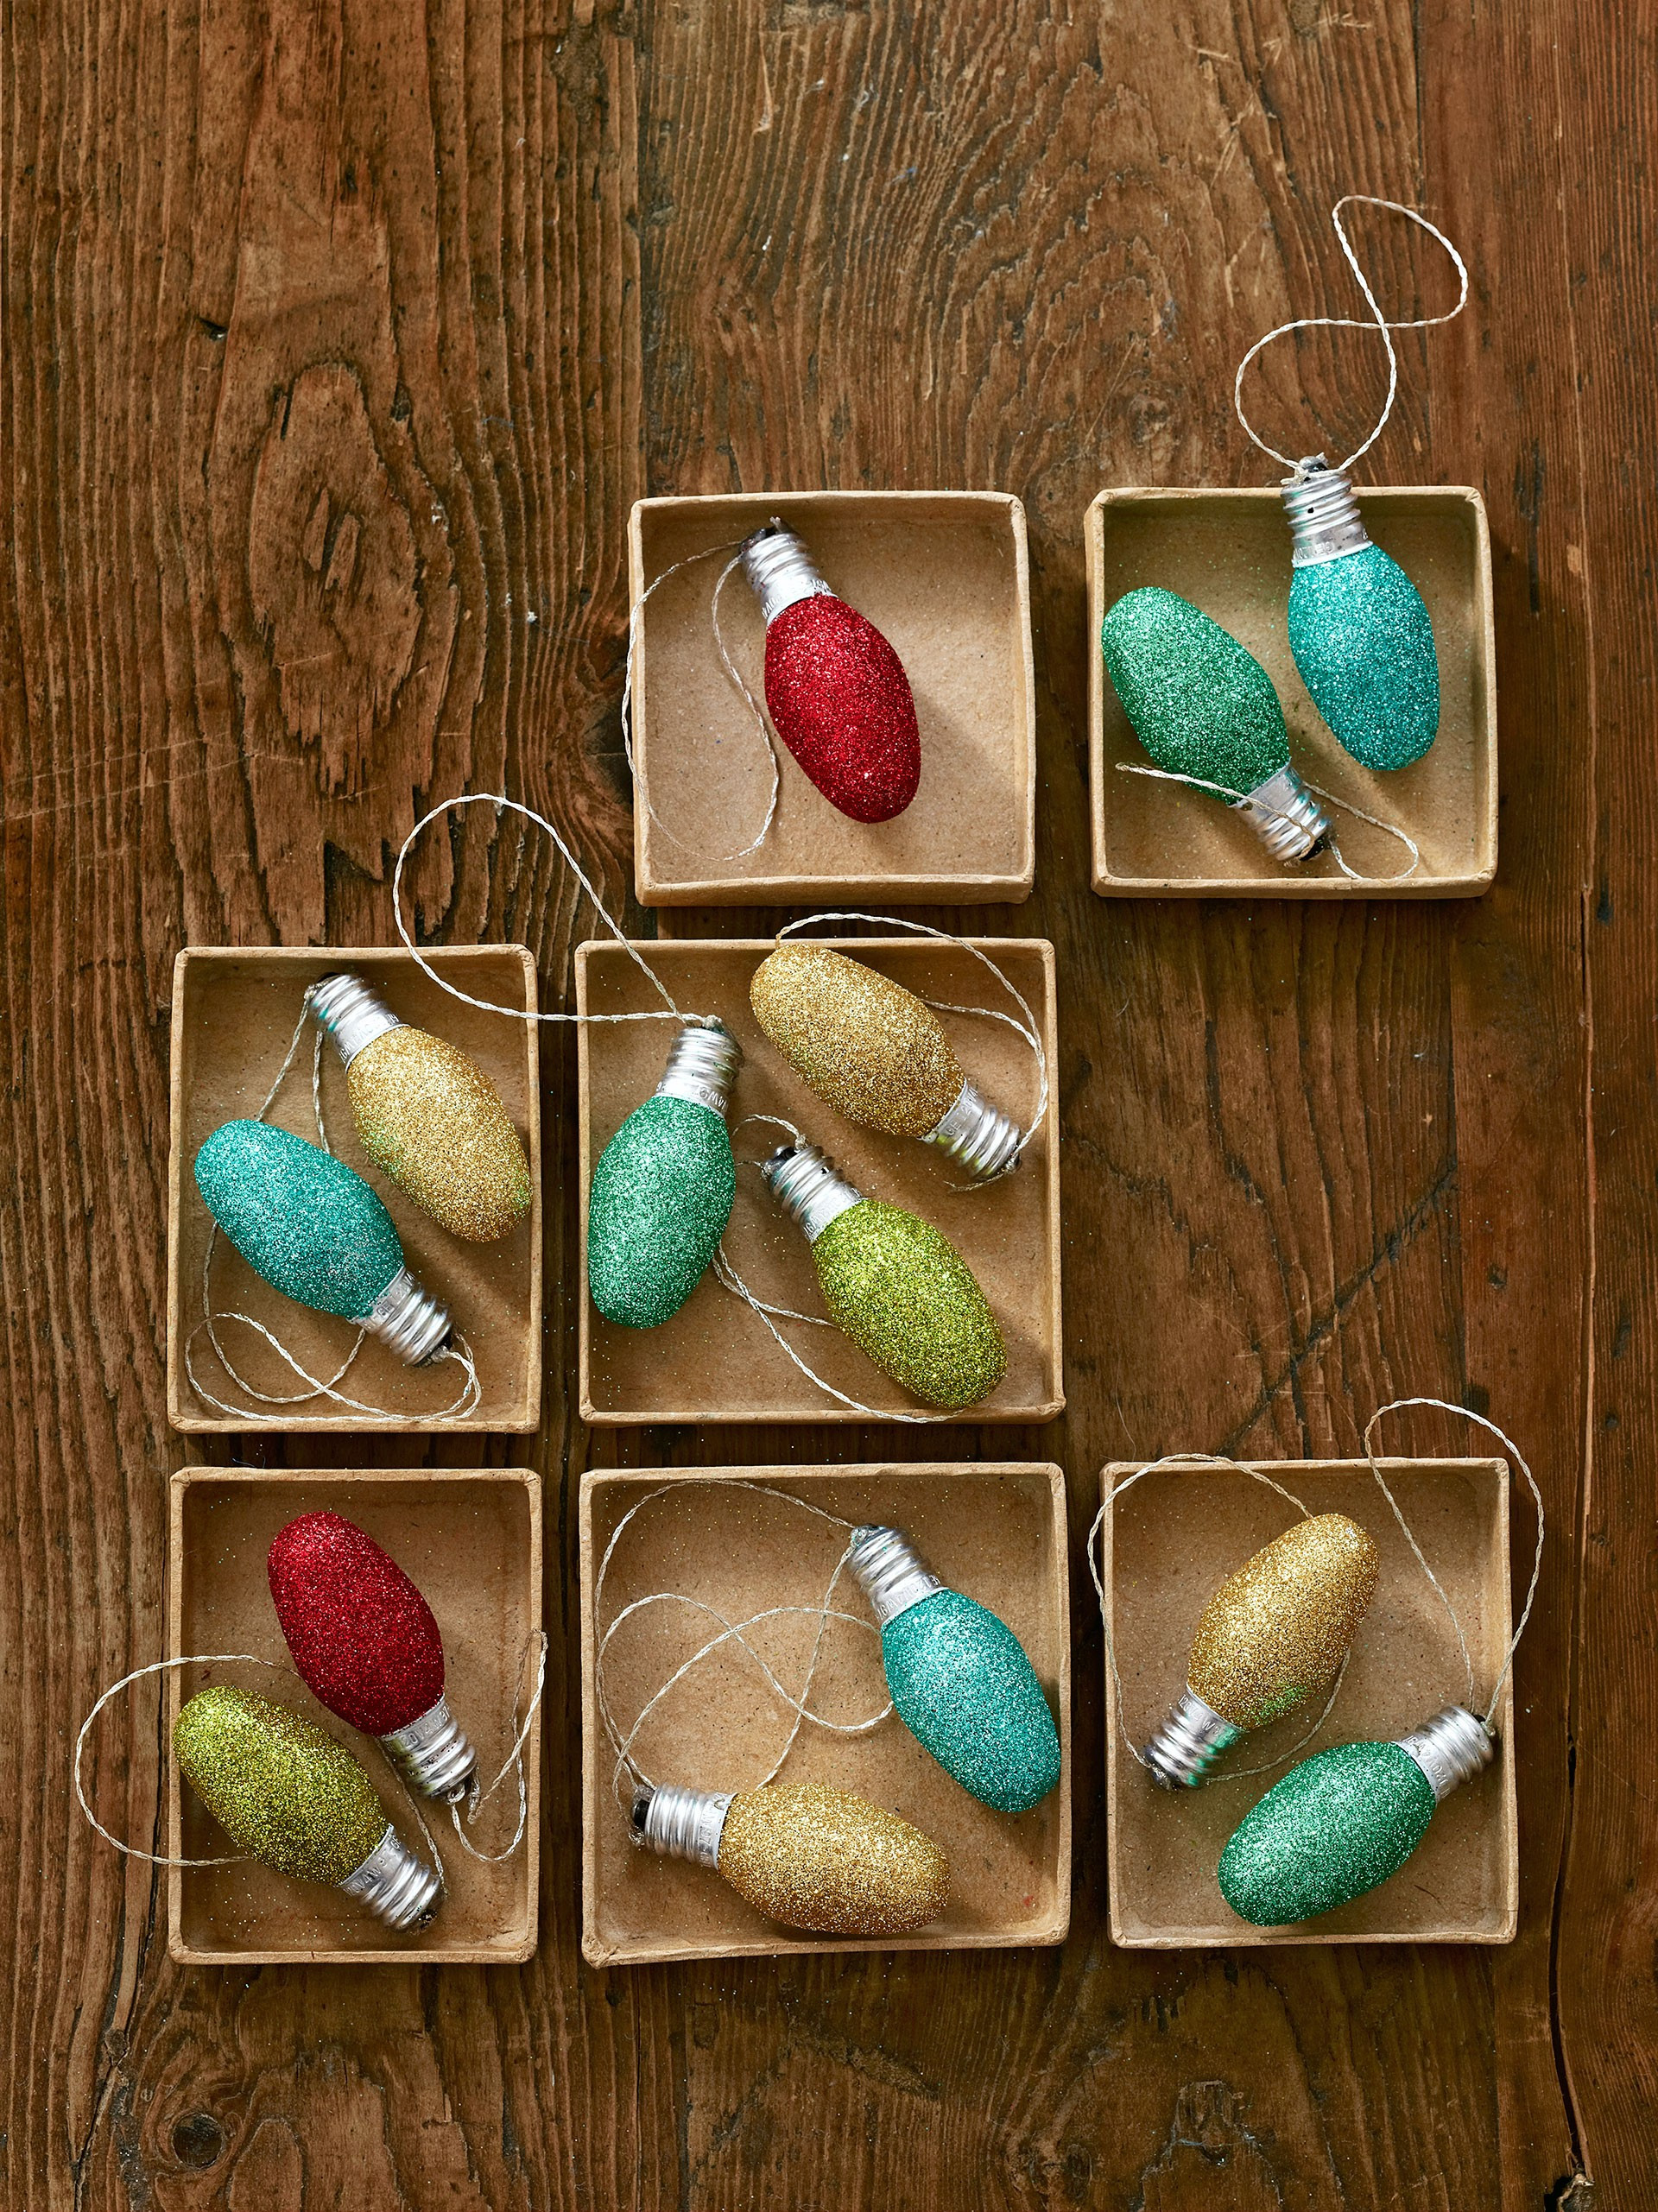 Easy Christmas ornaments Beautiful Crafts for Christmas ornaments Of Superb 49 Pics Easy Christmas ornaments